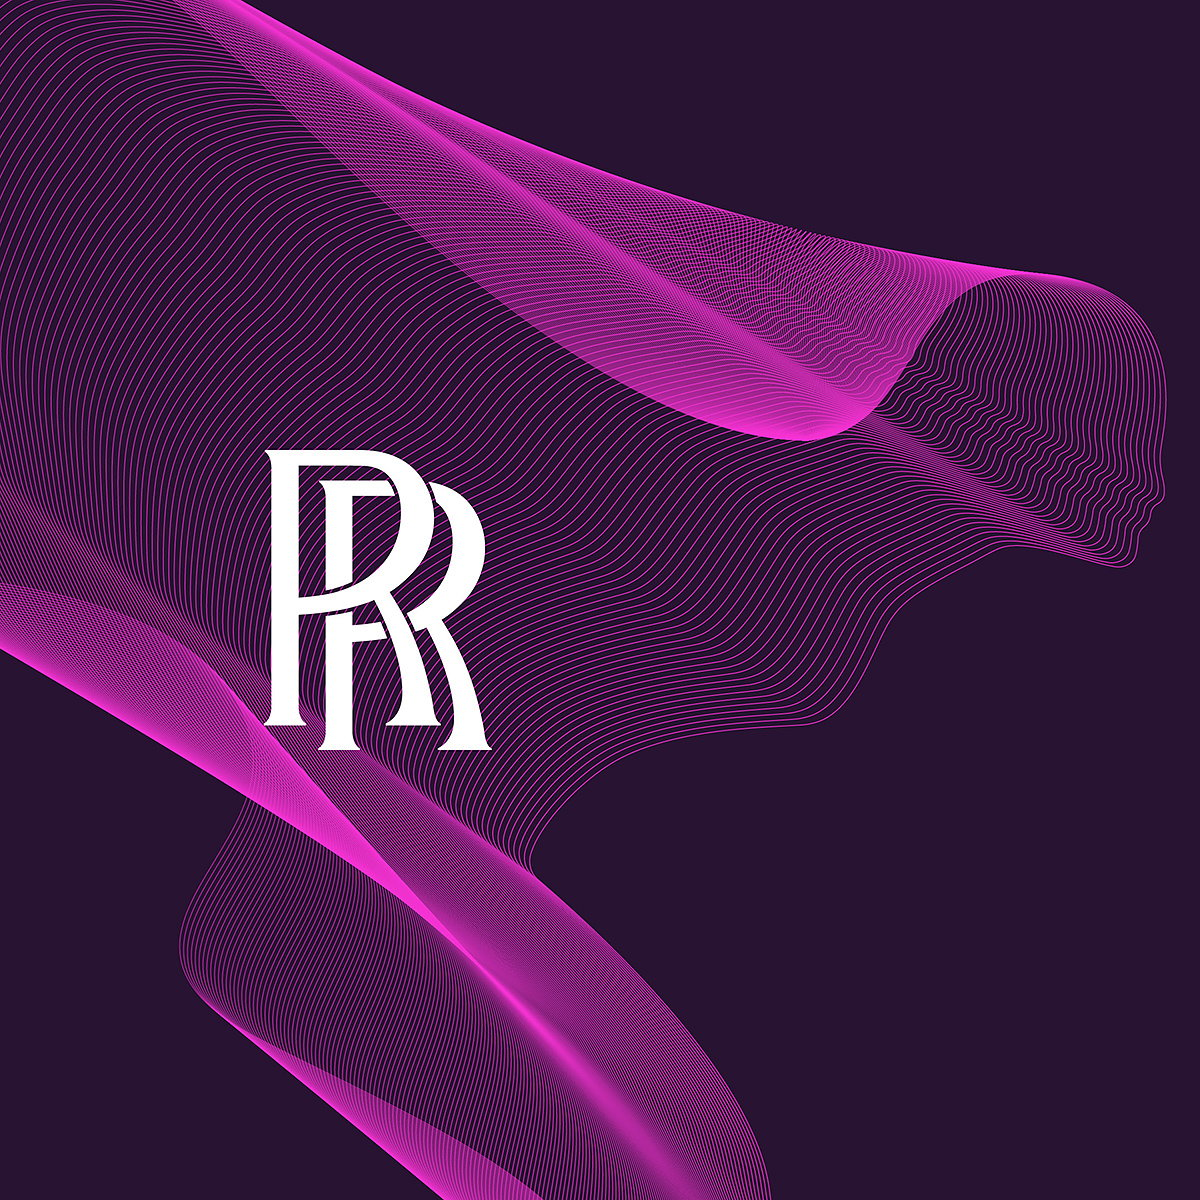 Pentagram Designs New Brand Identity for Rolls-Royce